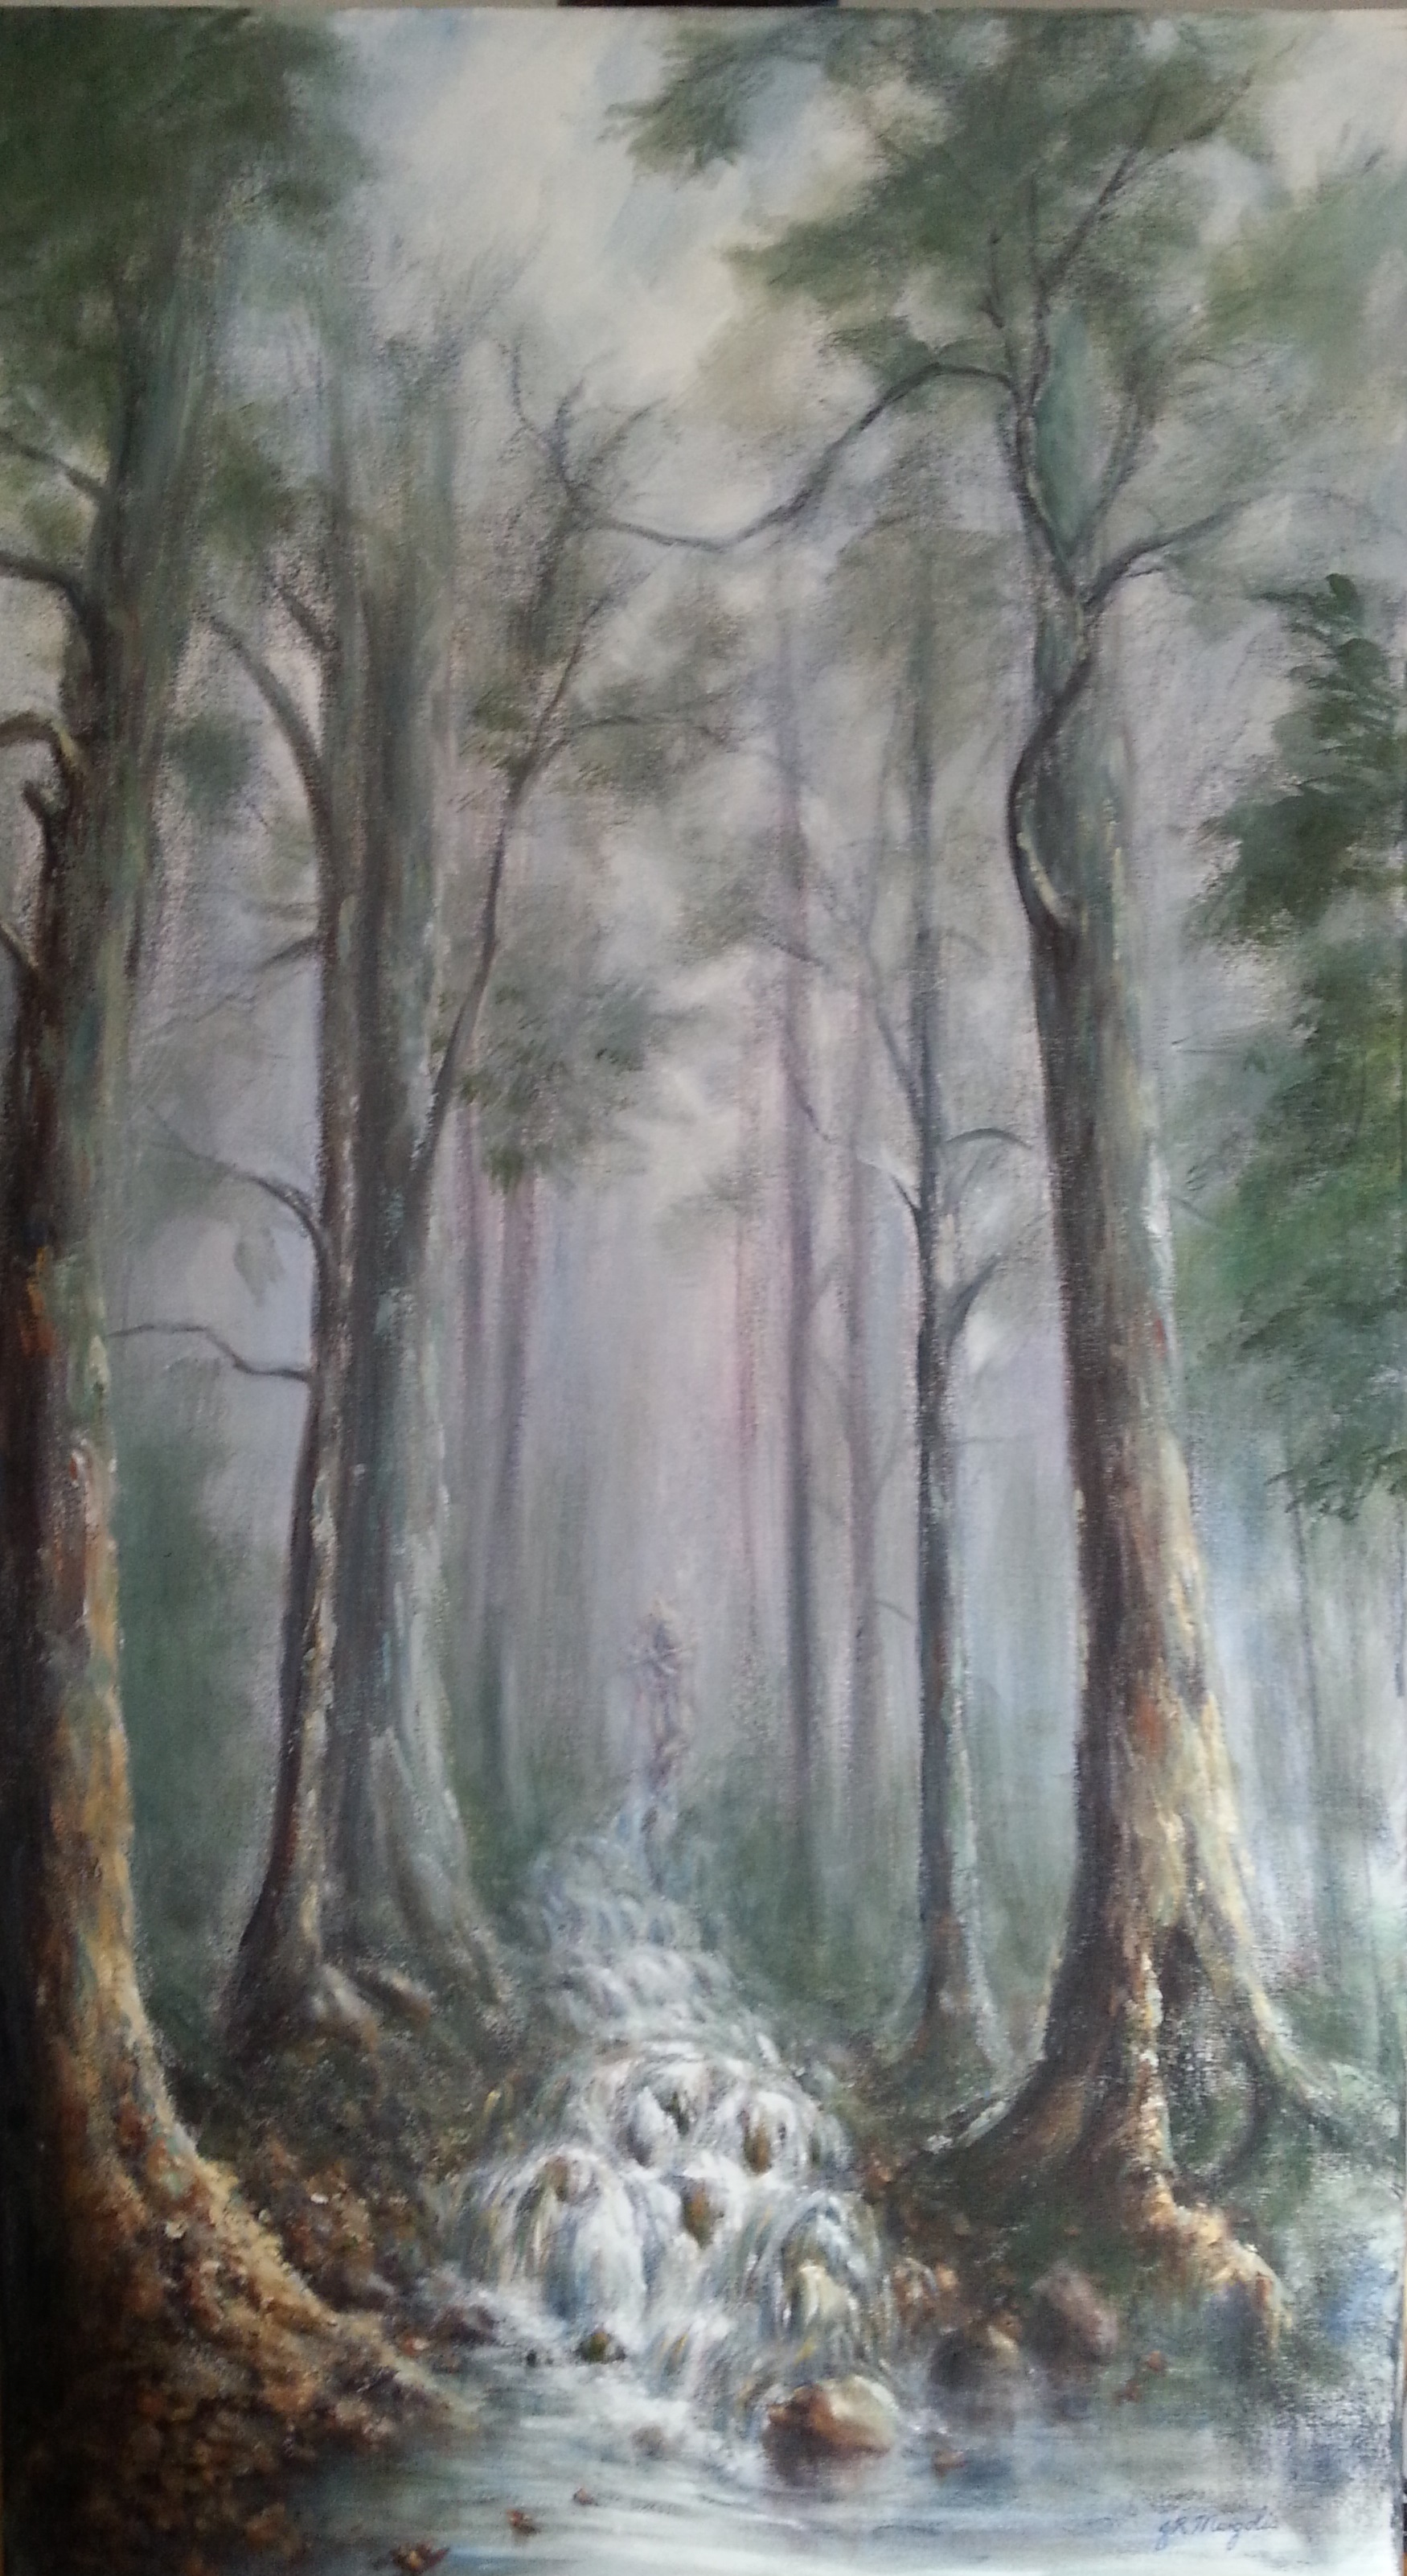 Shani's forest